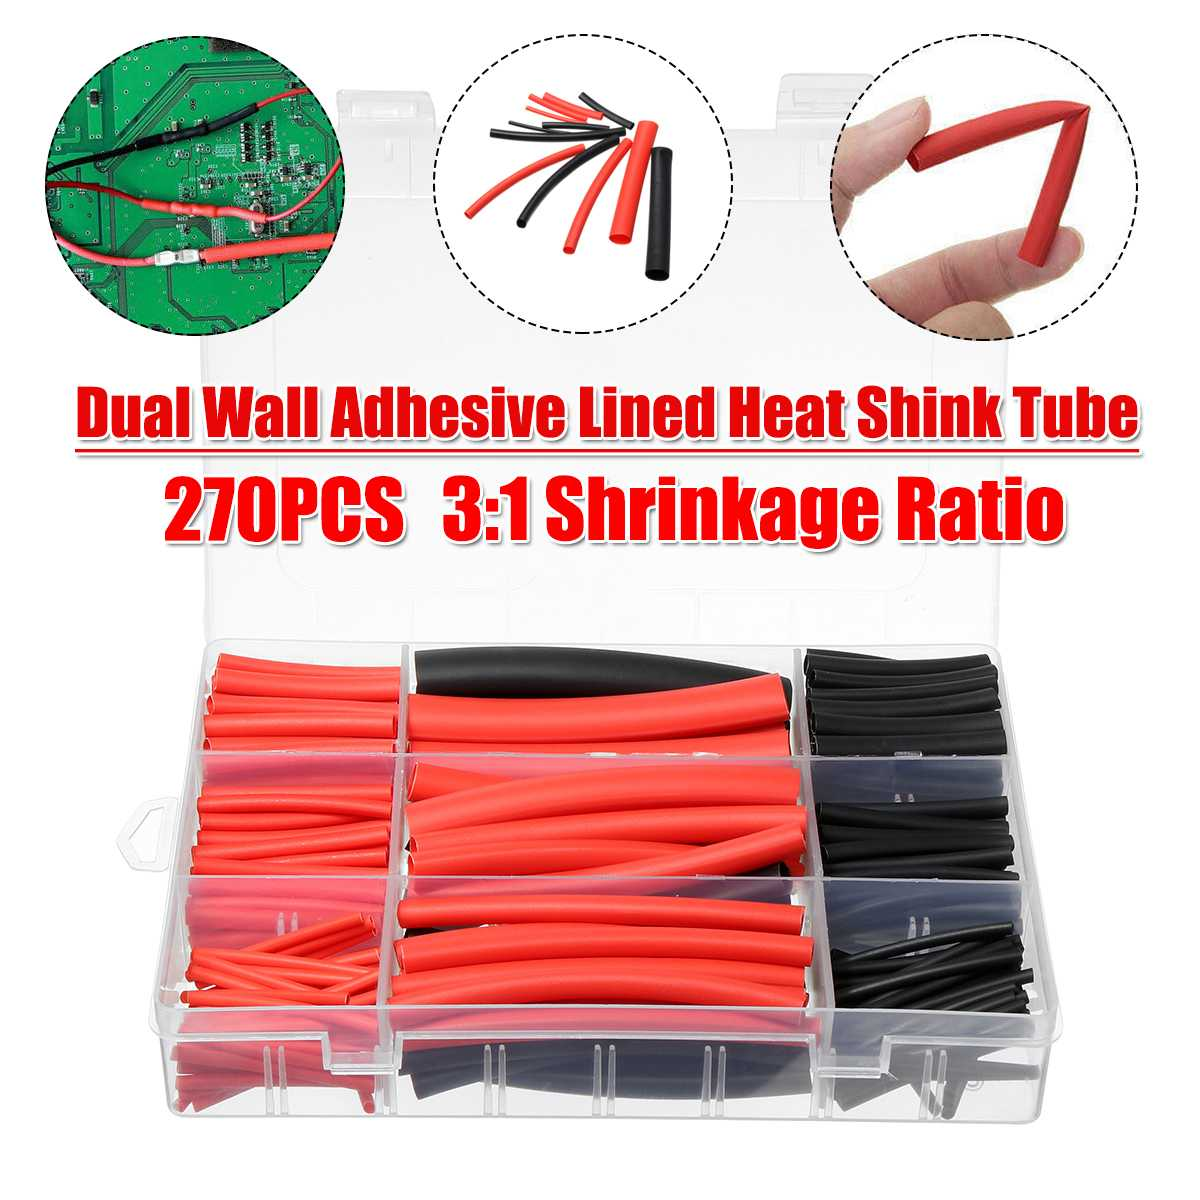 TMOEC 270Pcs Heat Shrink Tube Wrap Assortment Wire Cable Insulation Sleeving Dual Wall Heat Shrink Tubing Tube Sleeve Wrap Wire